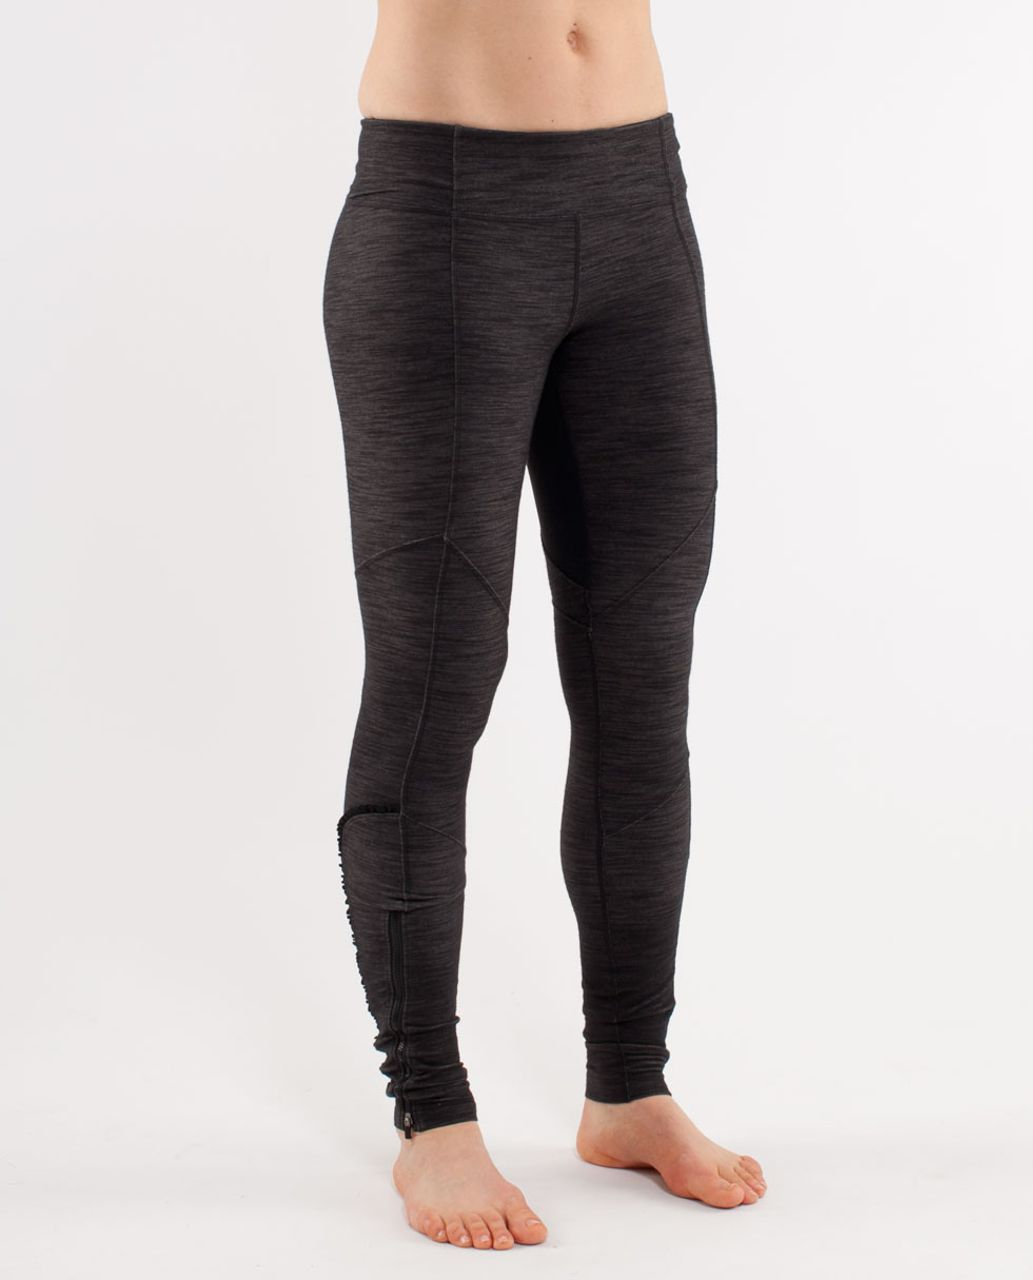 Lululemon Dressage Pant *Denim - Black Slub Denim /  Black